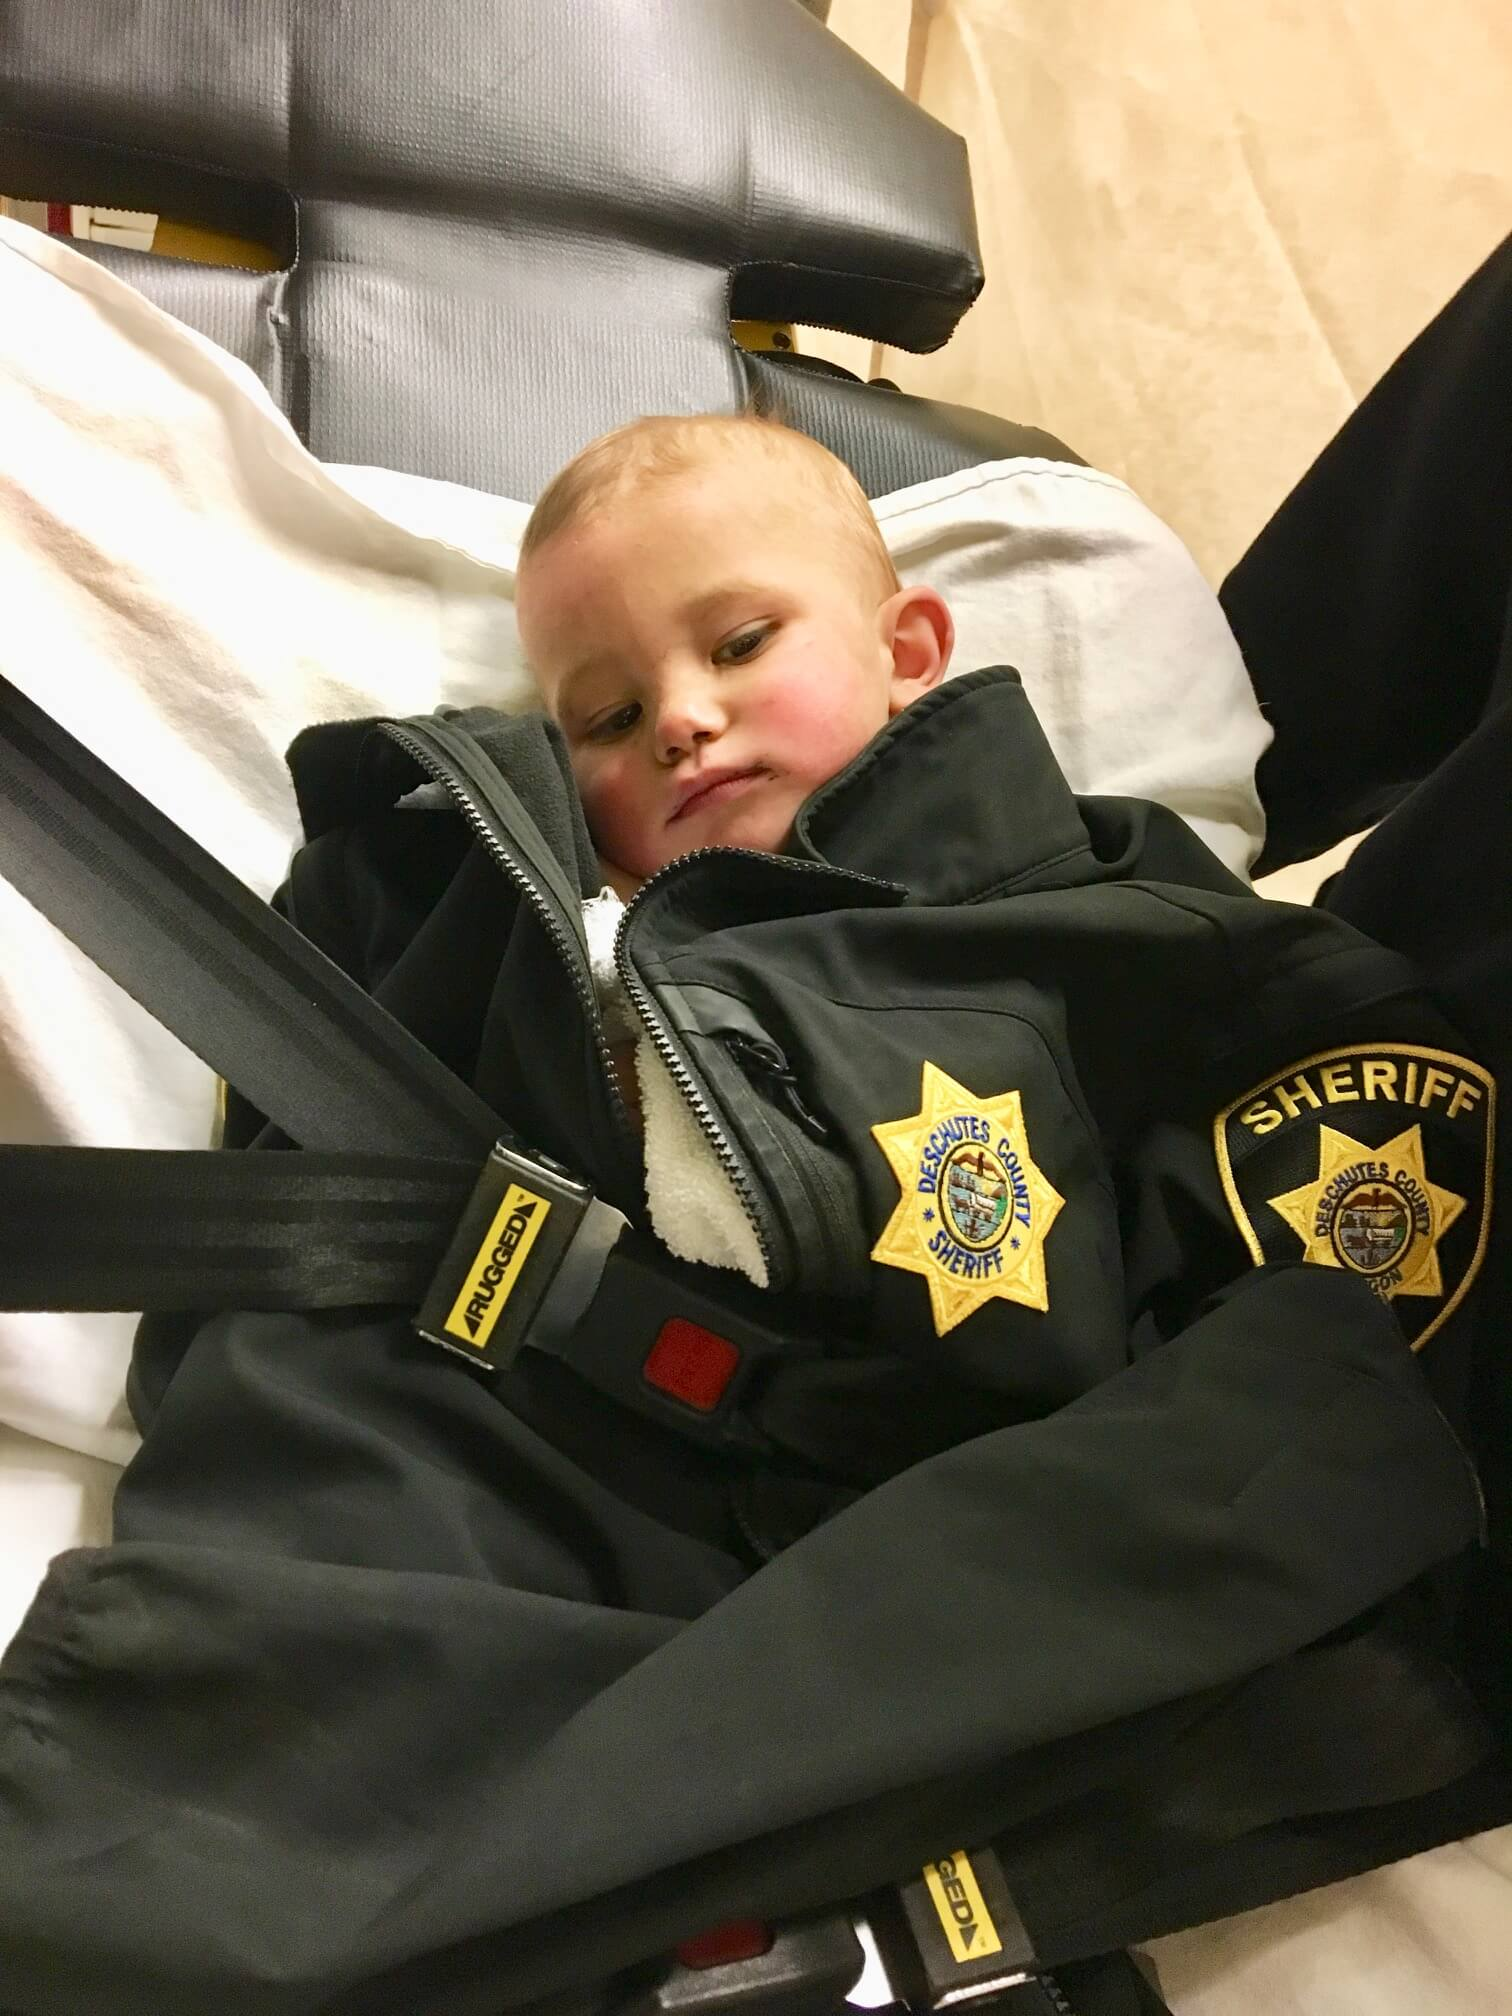 MISSING ONE YEAR OLD SOUTH OF BEND